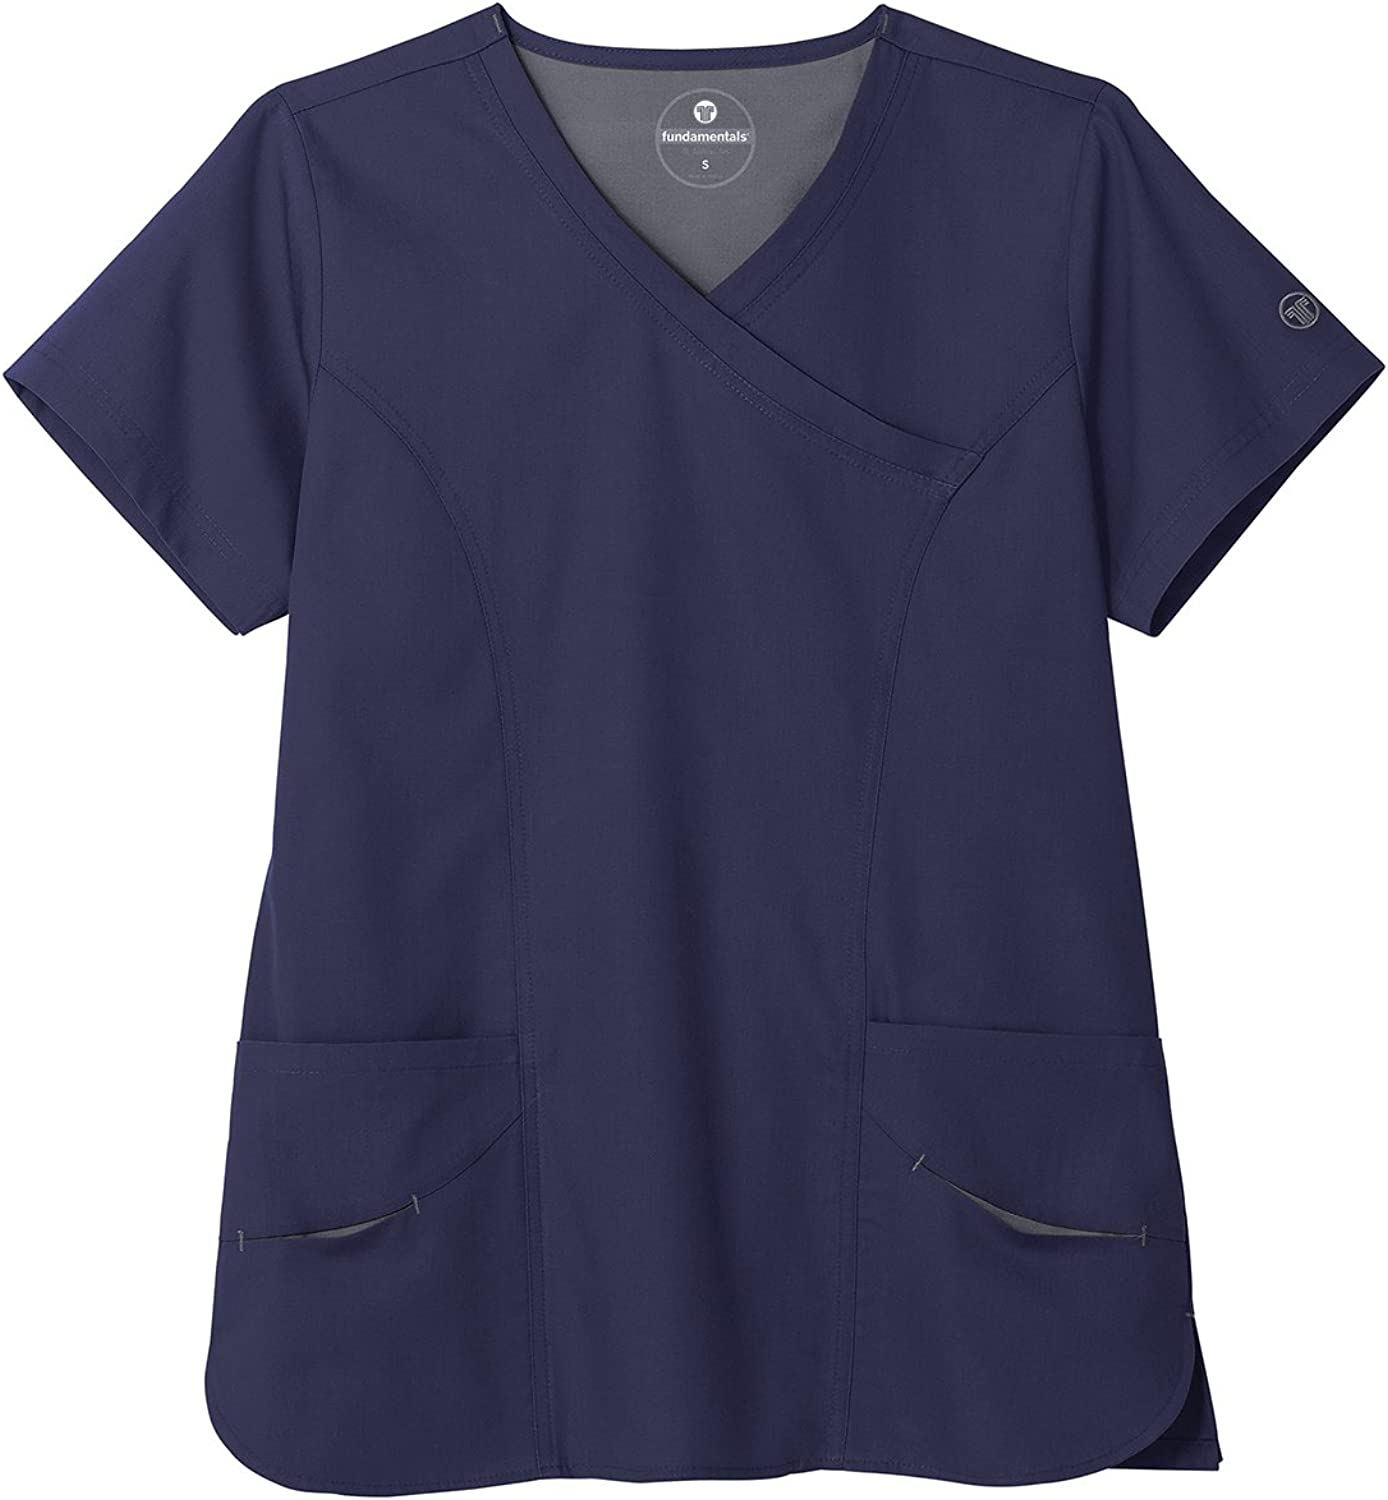 White Swan Fundamentals 14371 Women's Modern Wrap 5Pocket Scrub Top